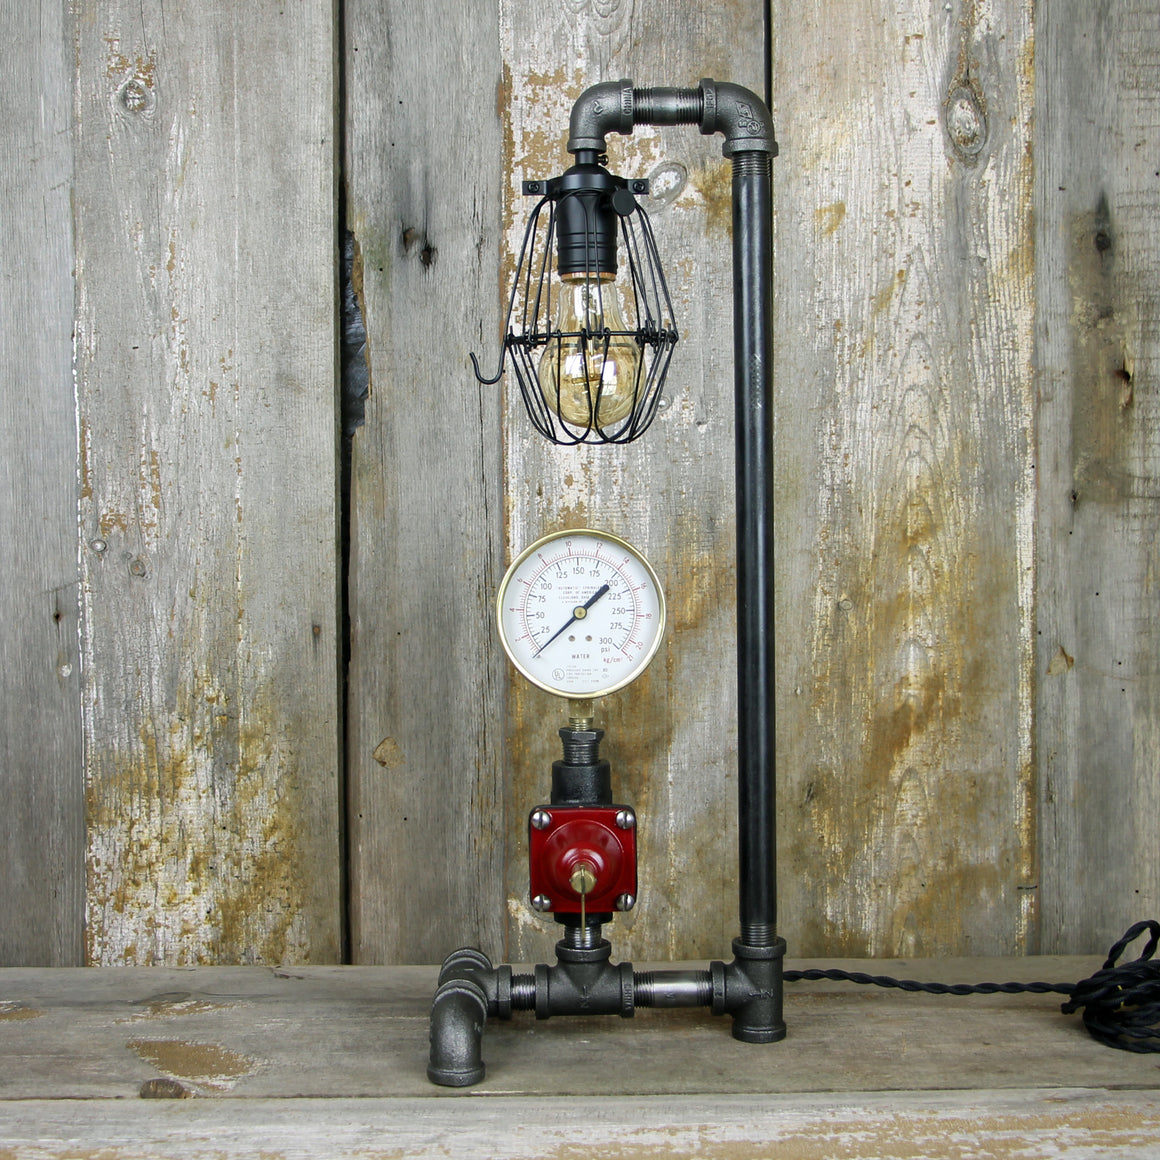 Industrial Table Lamp with a Brass Gauge & Valve #56 - The Lighting Works